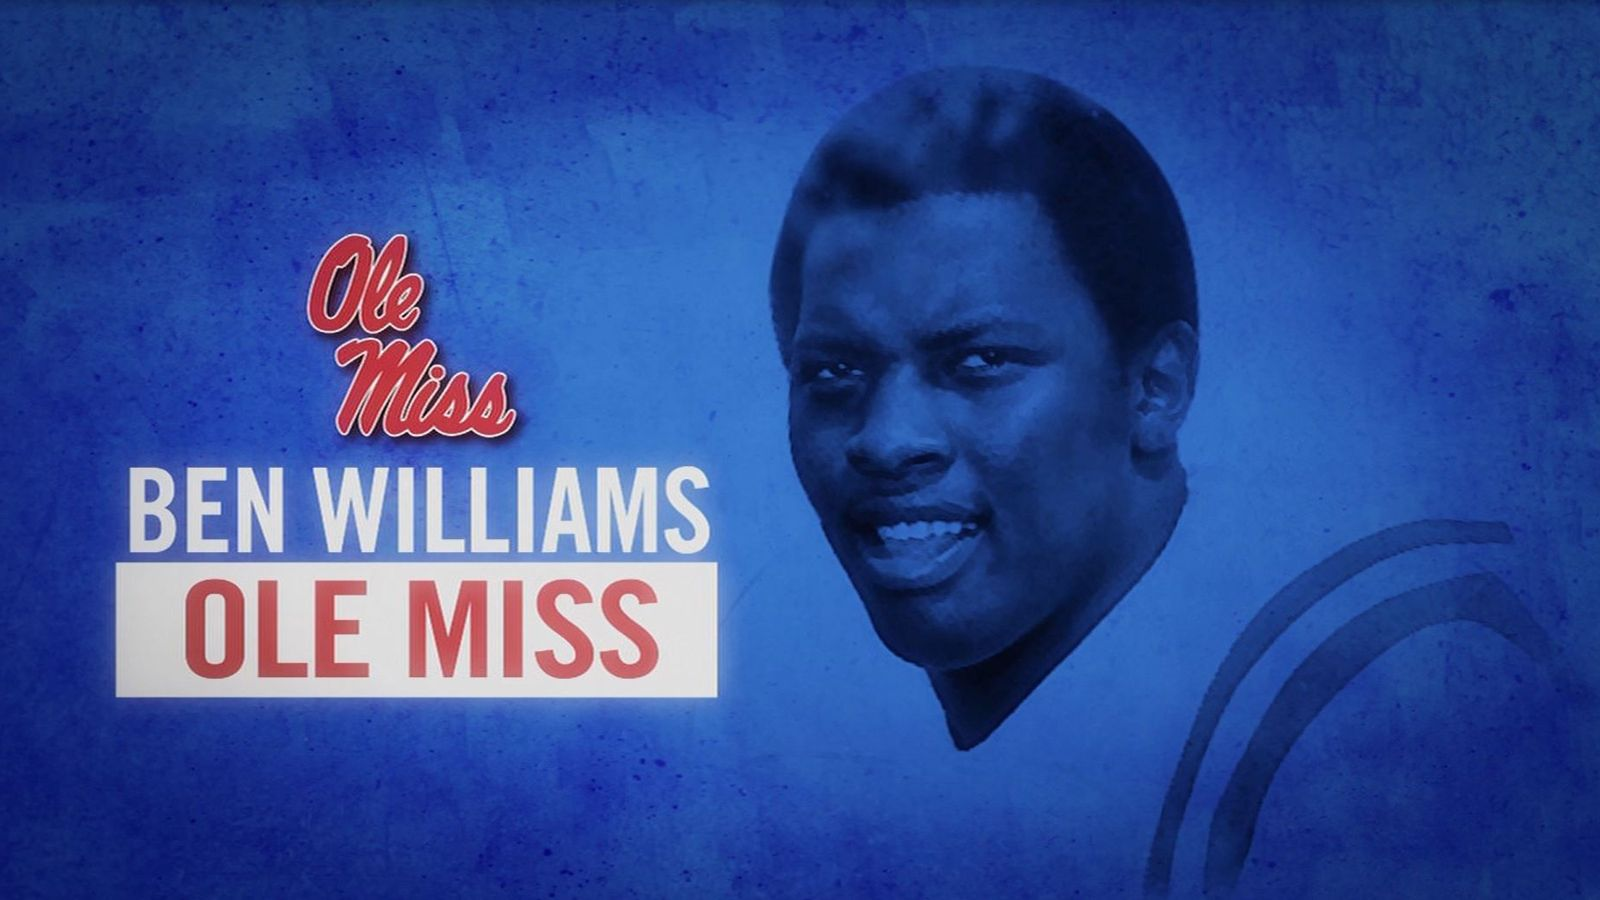 SEC celebrates Black History Month: Ole Miss